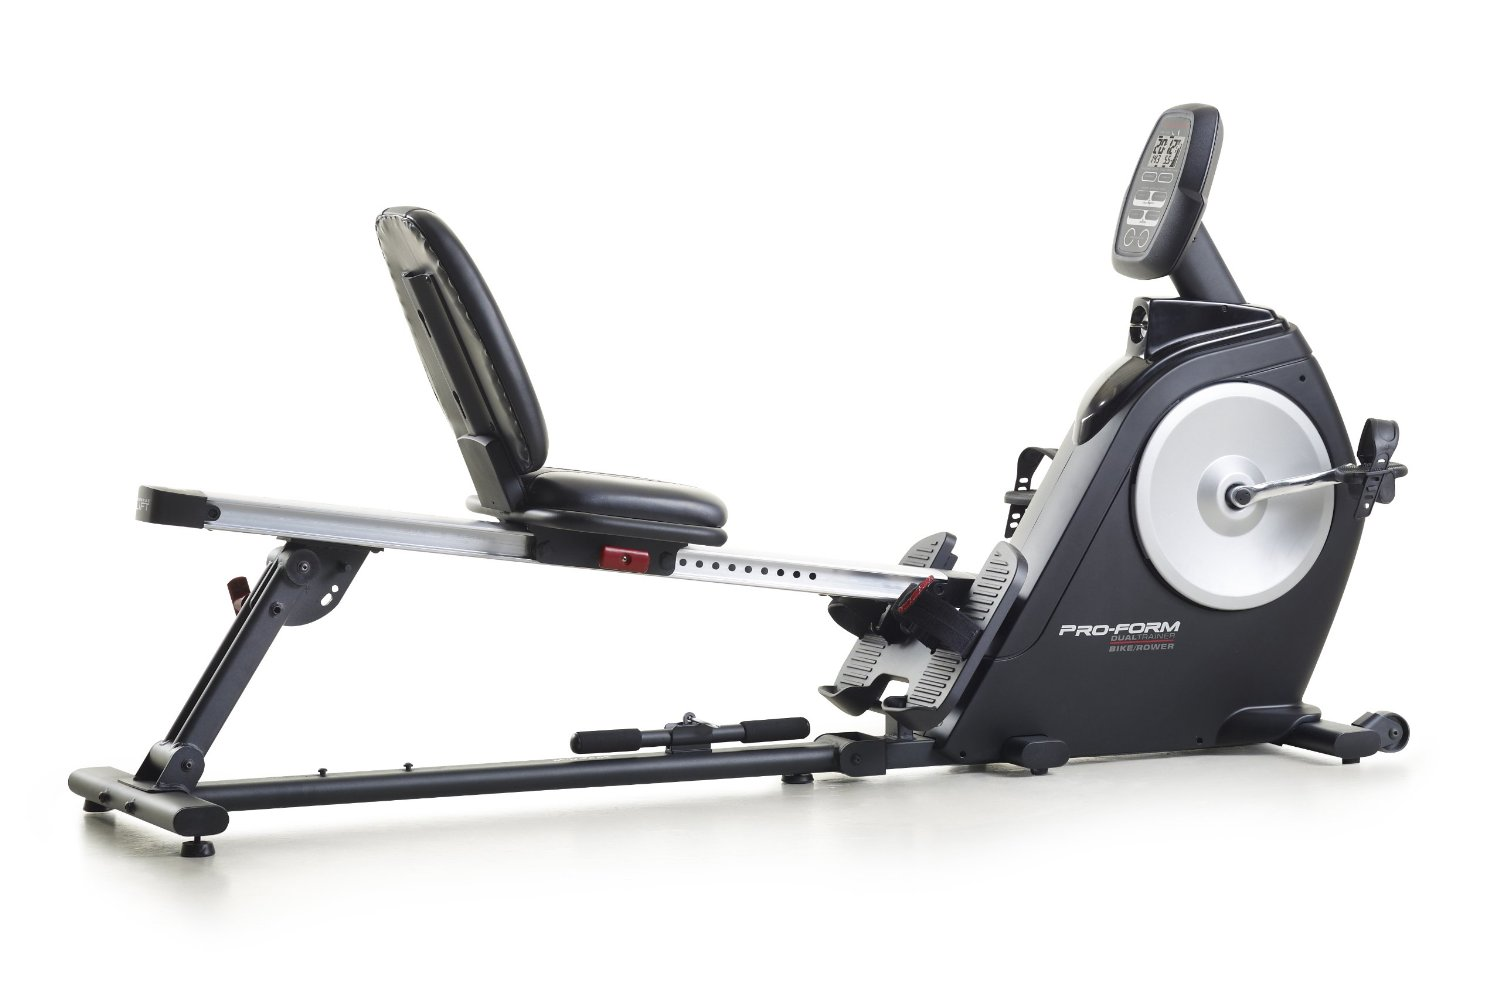 Proform Hybrid Rower Review Hybrid Rowing Machine